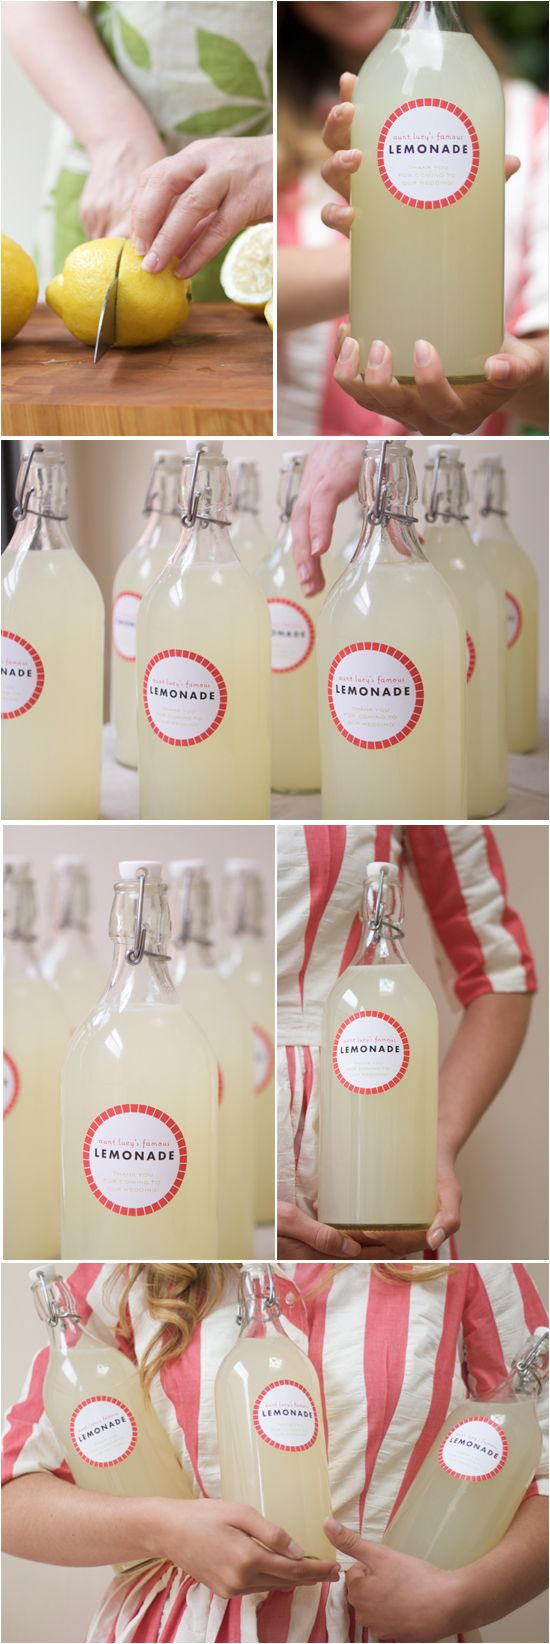 Send your summer wedding guests home with some homemade lemonade favors!